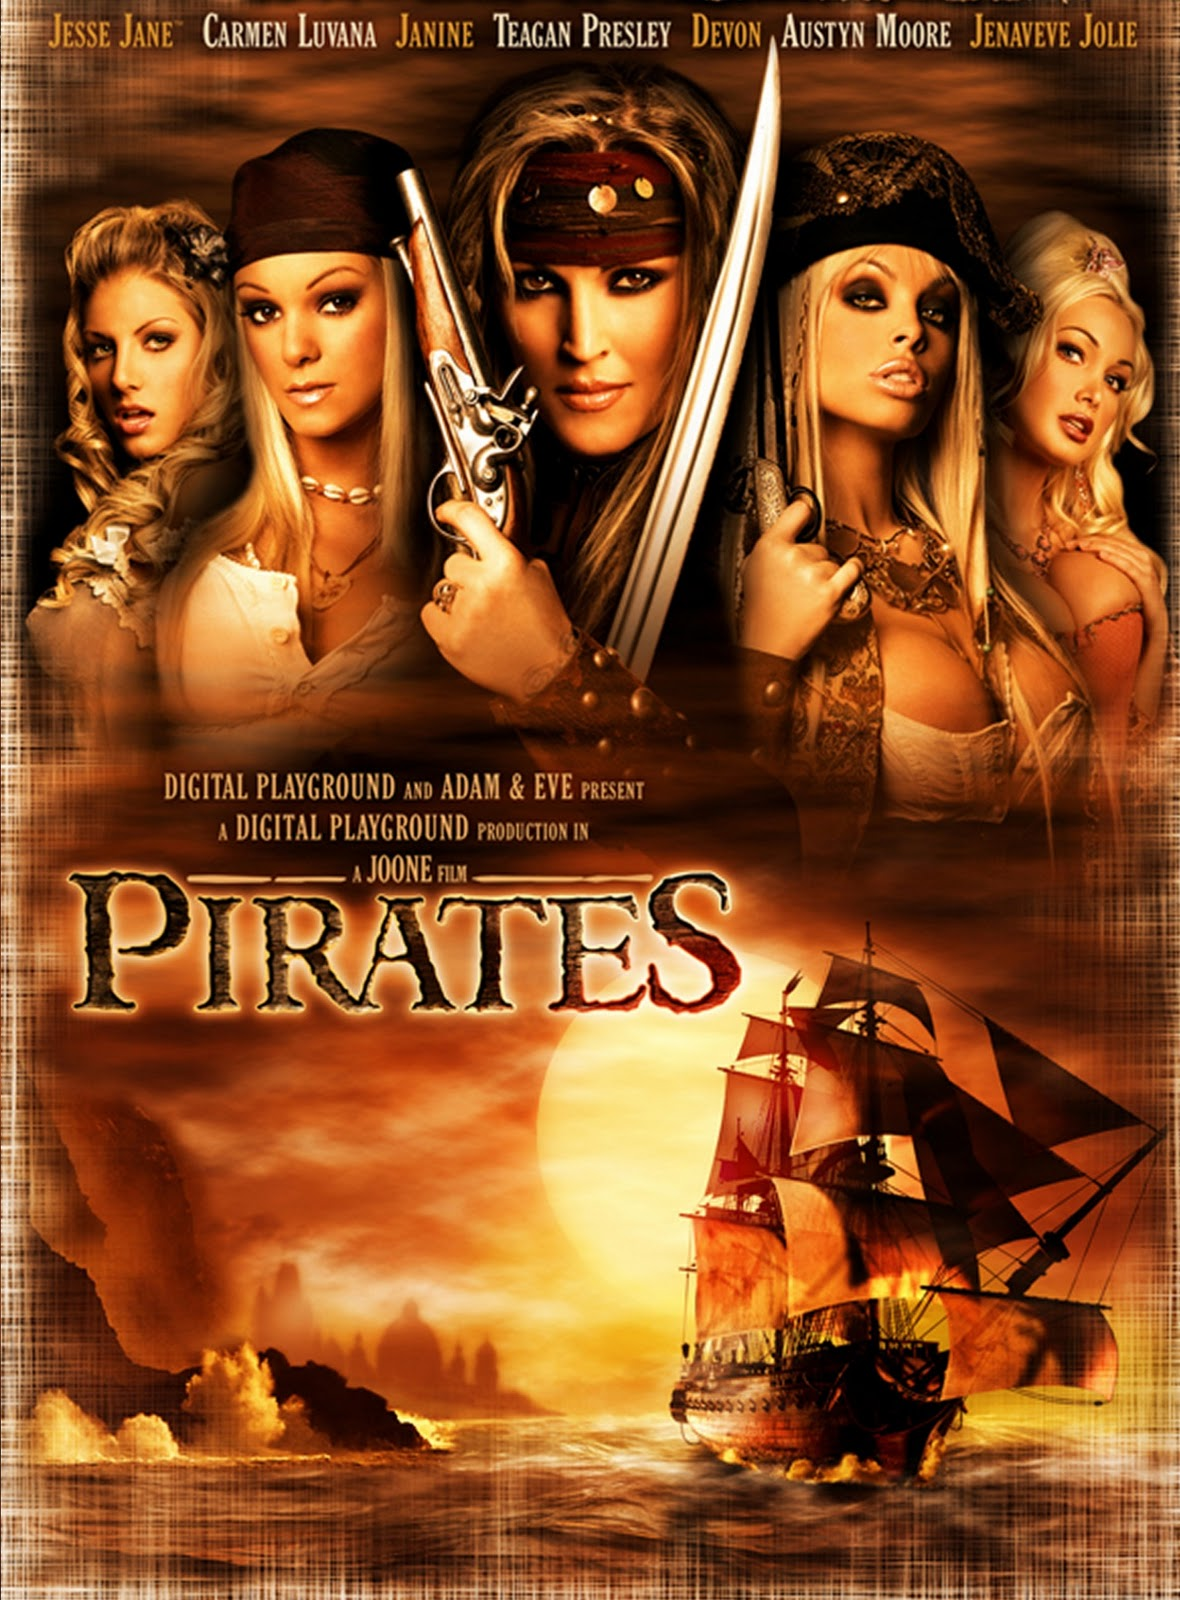 Pirate movie xxx a sexy movie pics nsfw movie